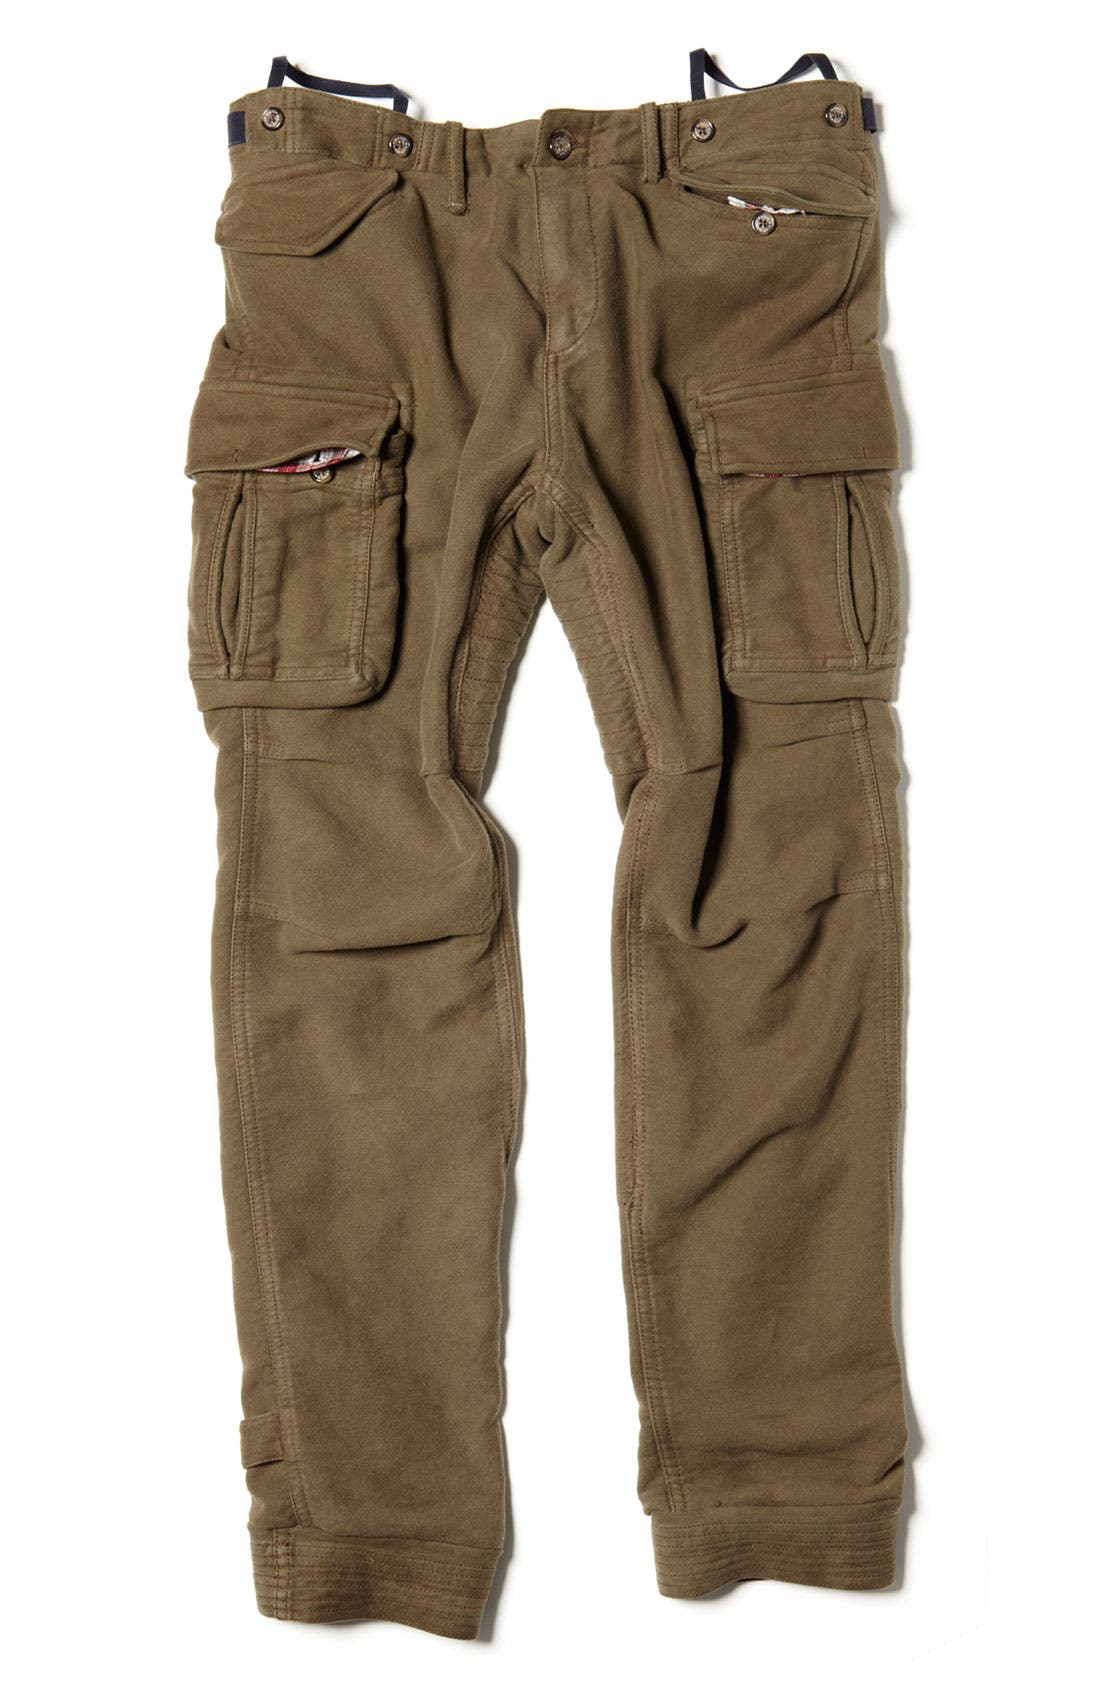 Skinny Moleskin Cotton Cargo Pants,                             Alternate thumbnail 5, color,                             301